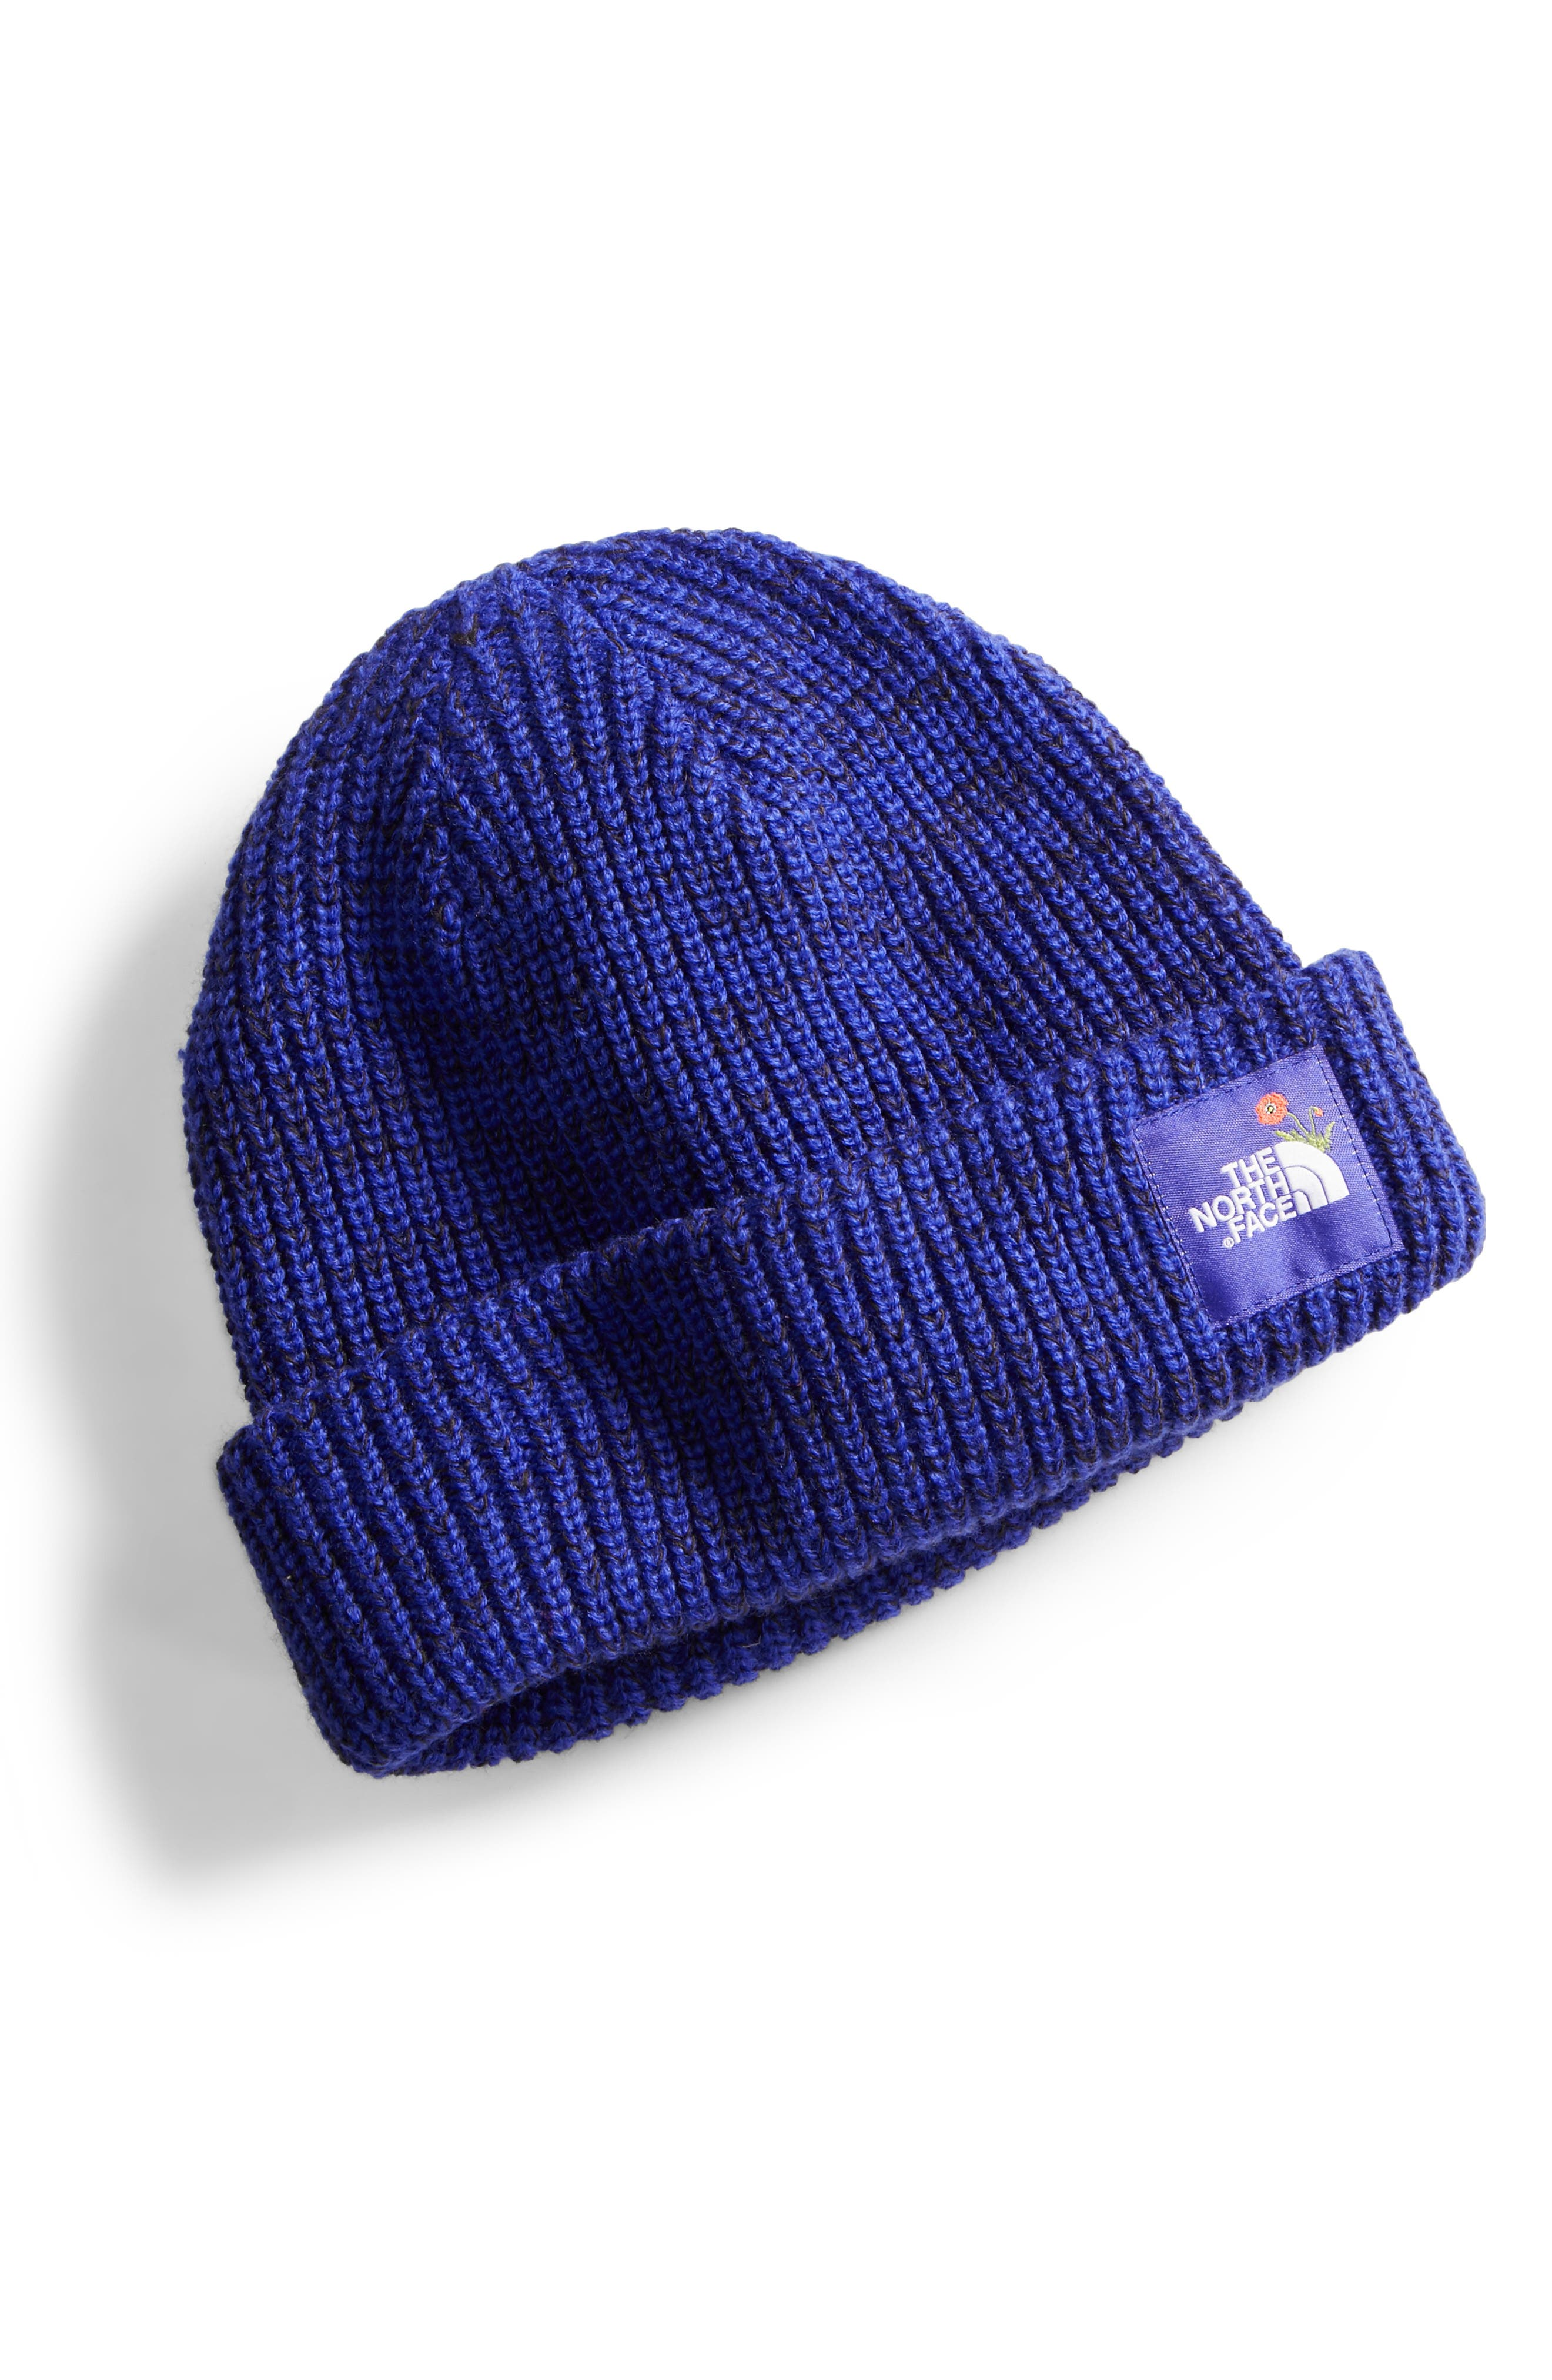 Main Image - The North Face Salty Dog Beanie